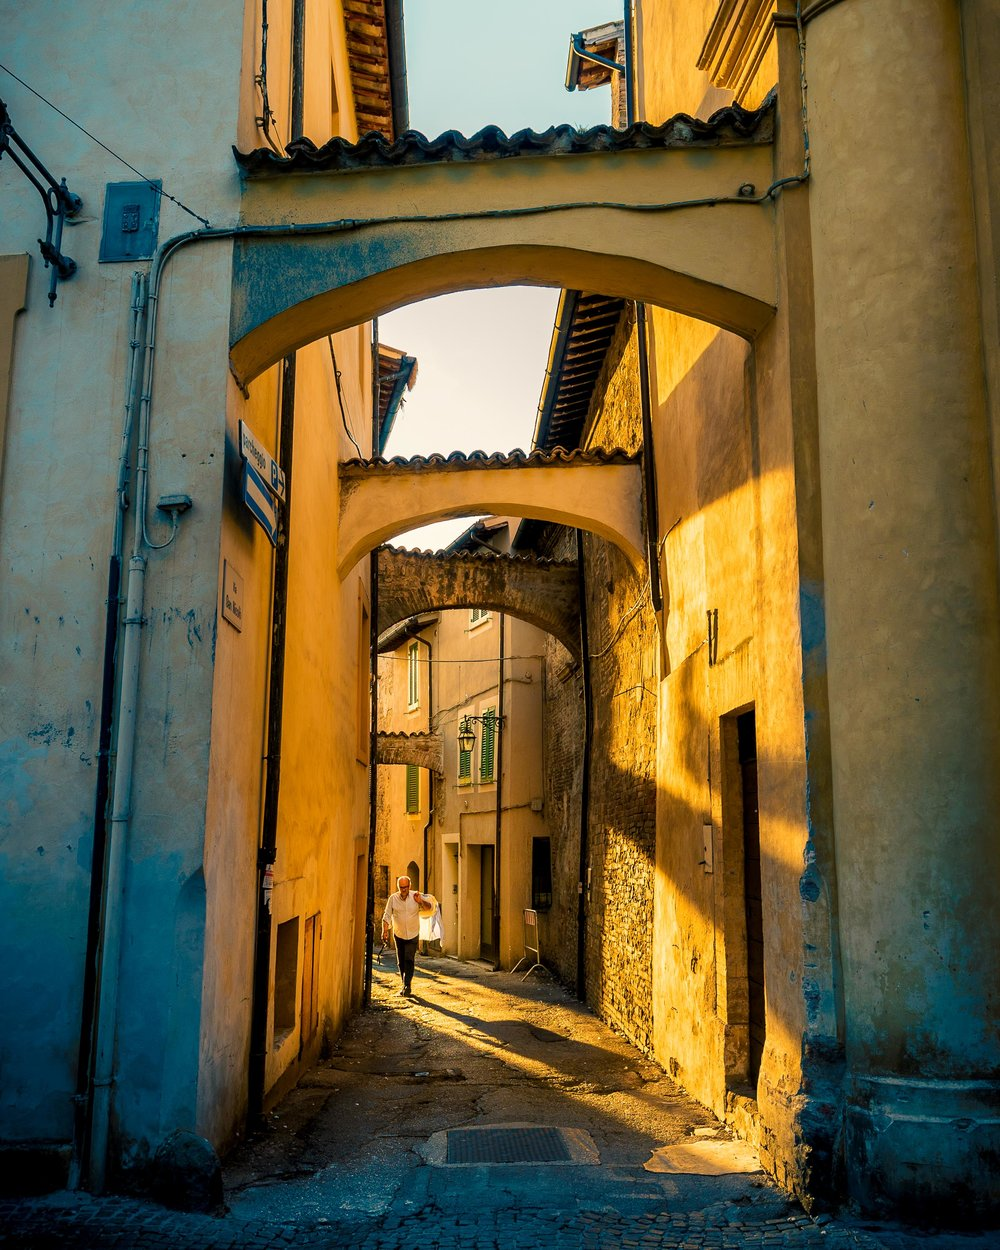 A photo from Bevagna, Italy, with some nice warm and cool tones that I wanted to emphasize.